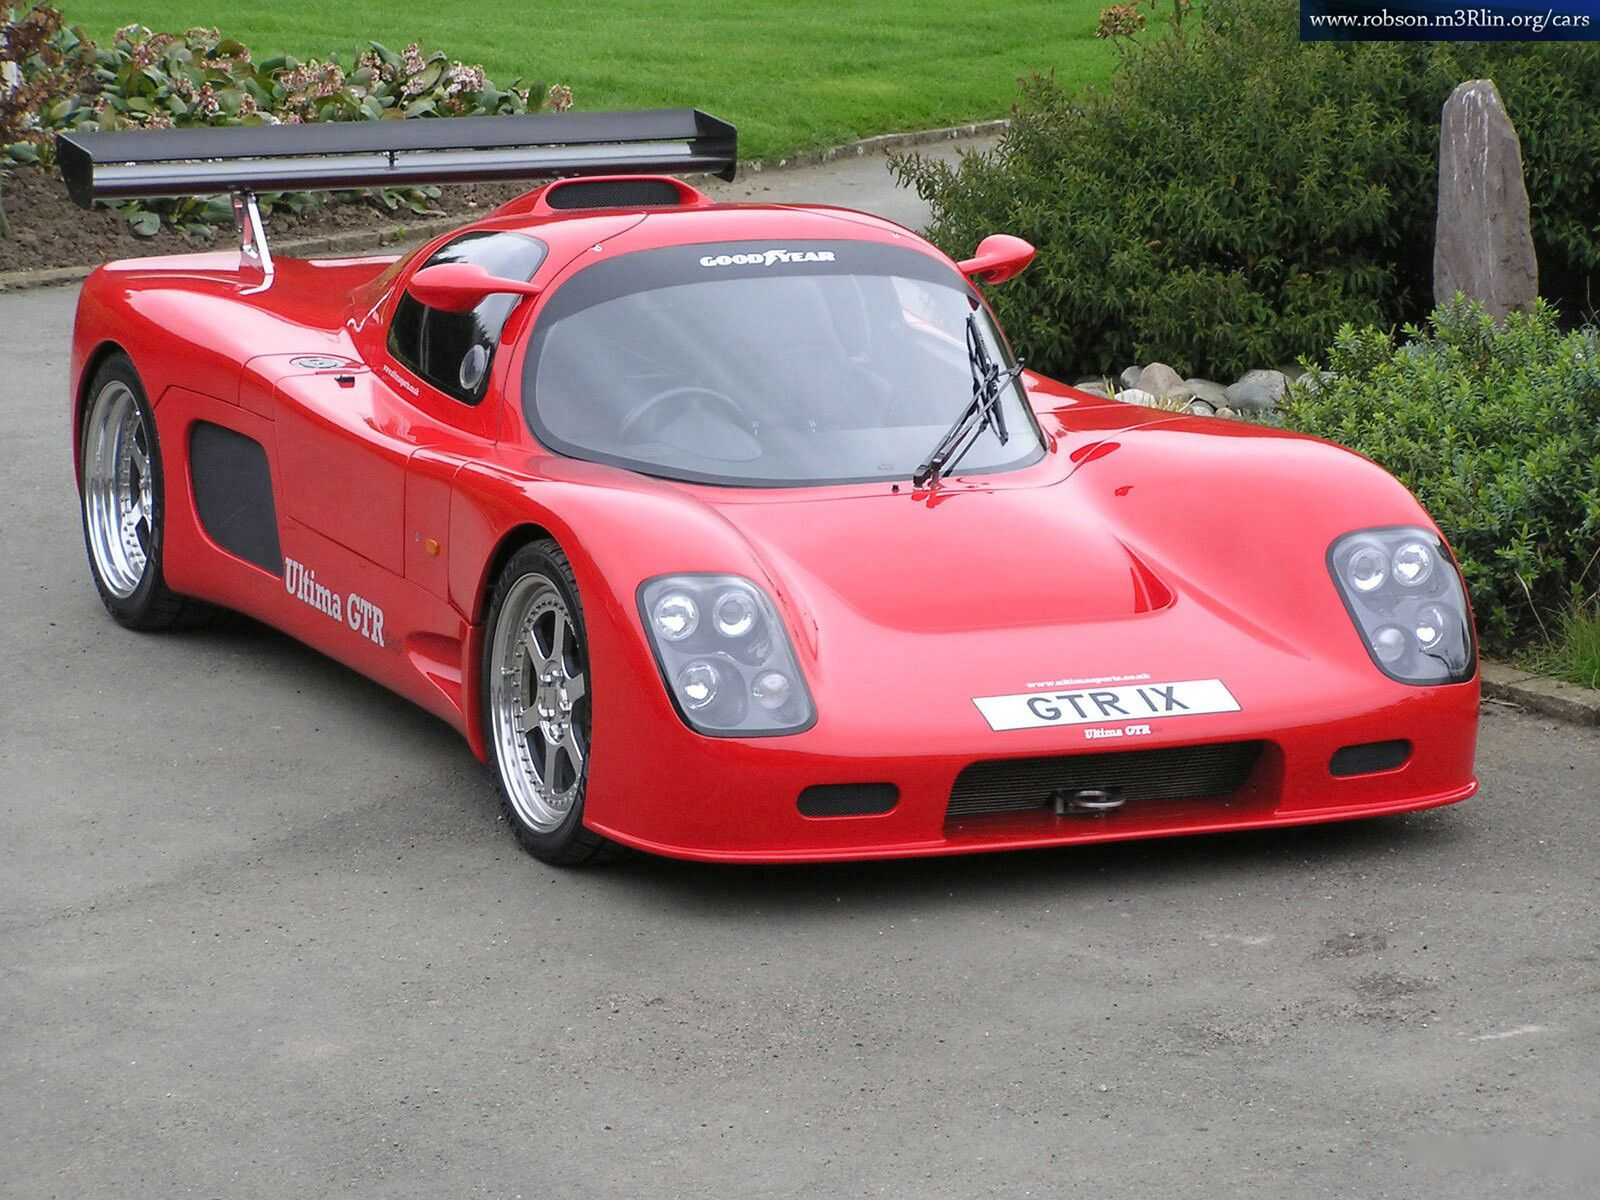 Ultima Car Google Search Ultima Pinterest Google Search